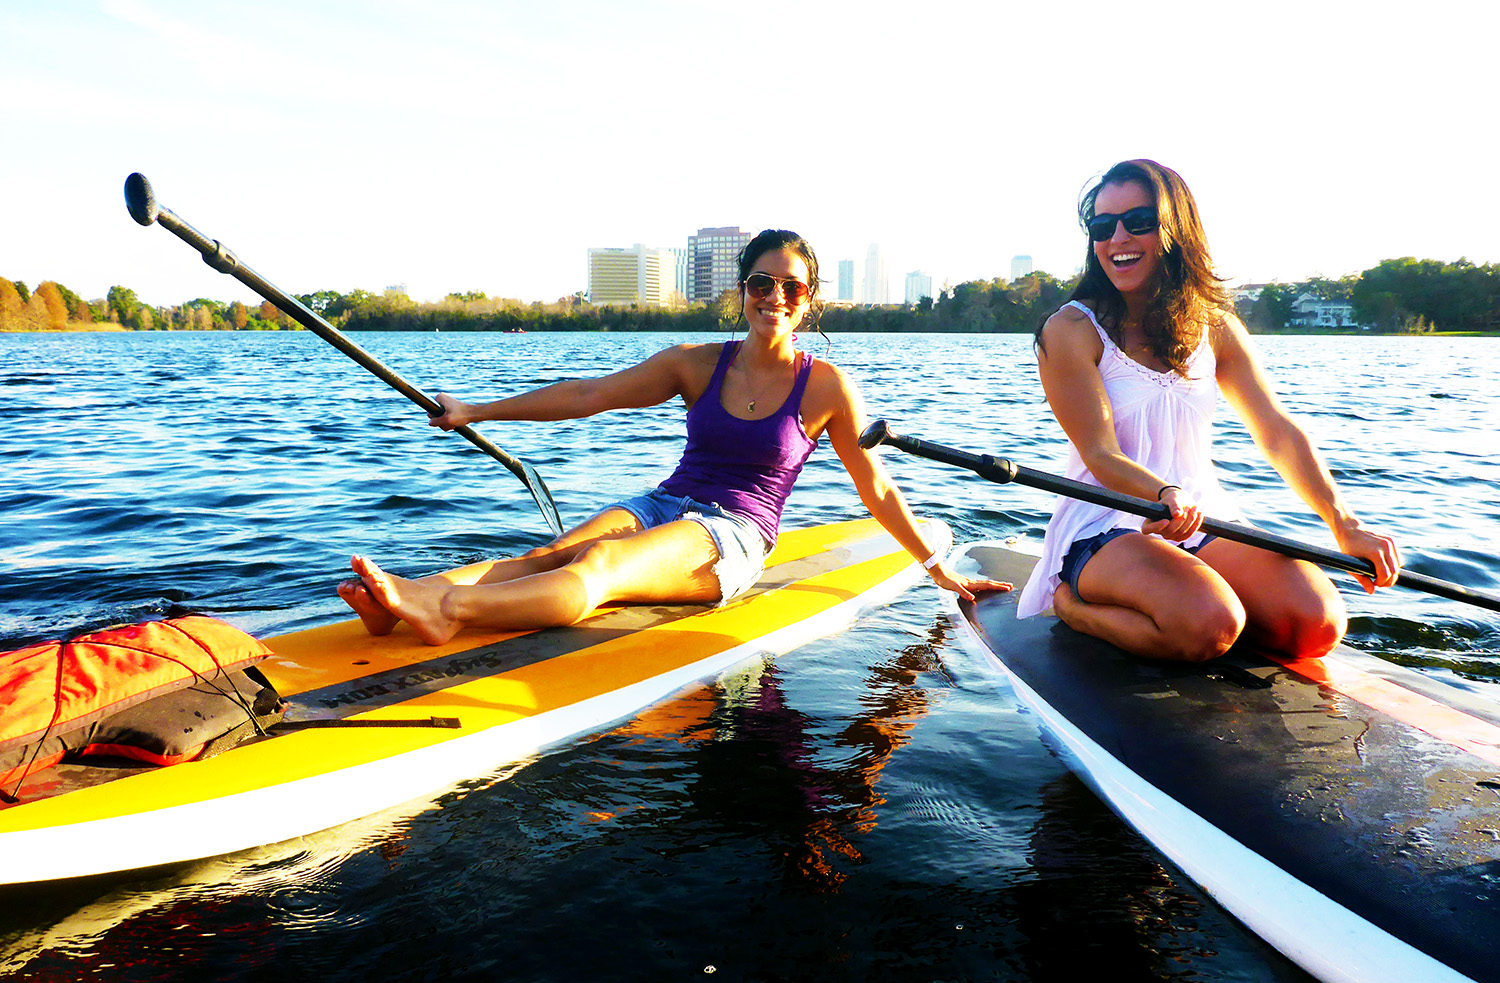 Paddleboarding on Lake Ivanhoe in Downtown Orlando